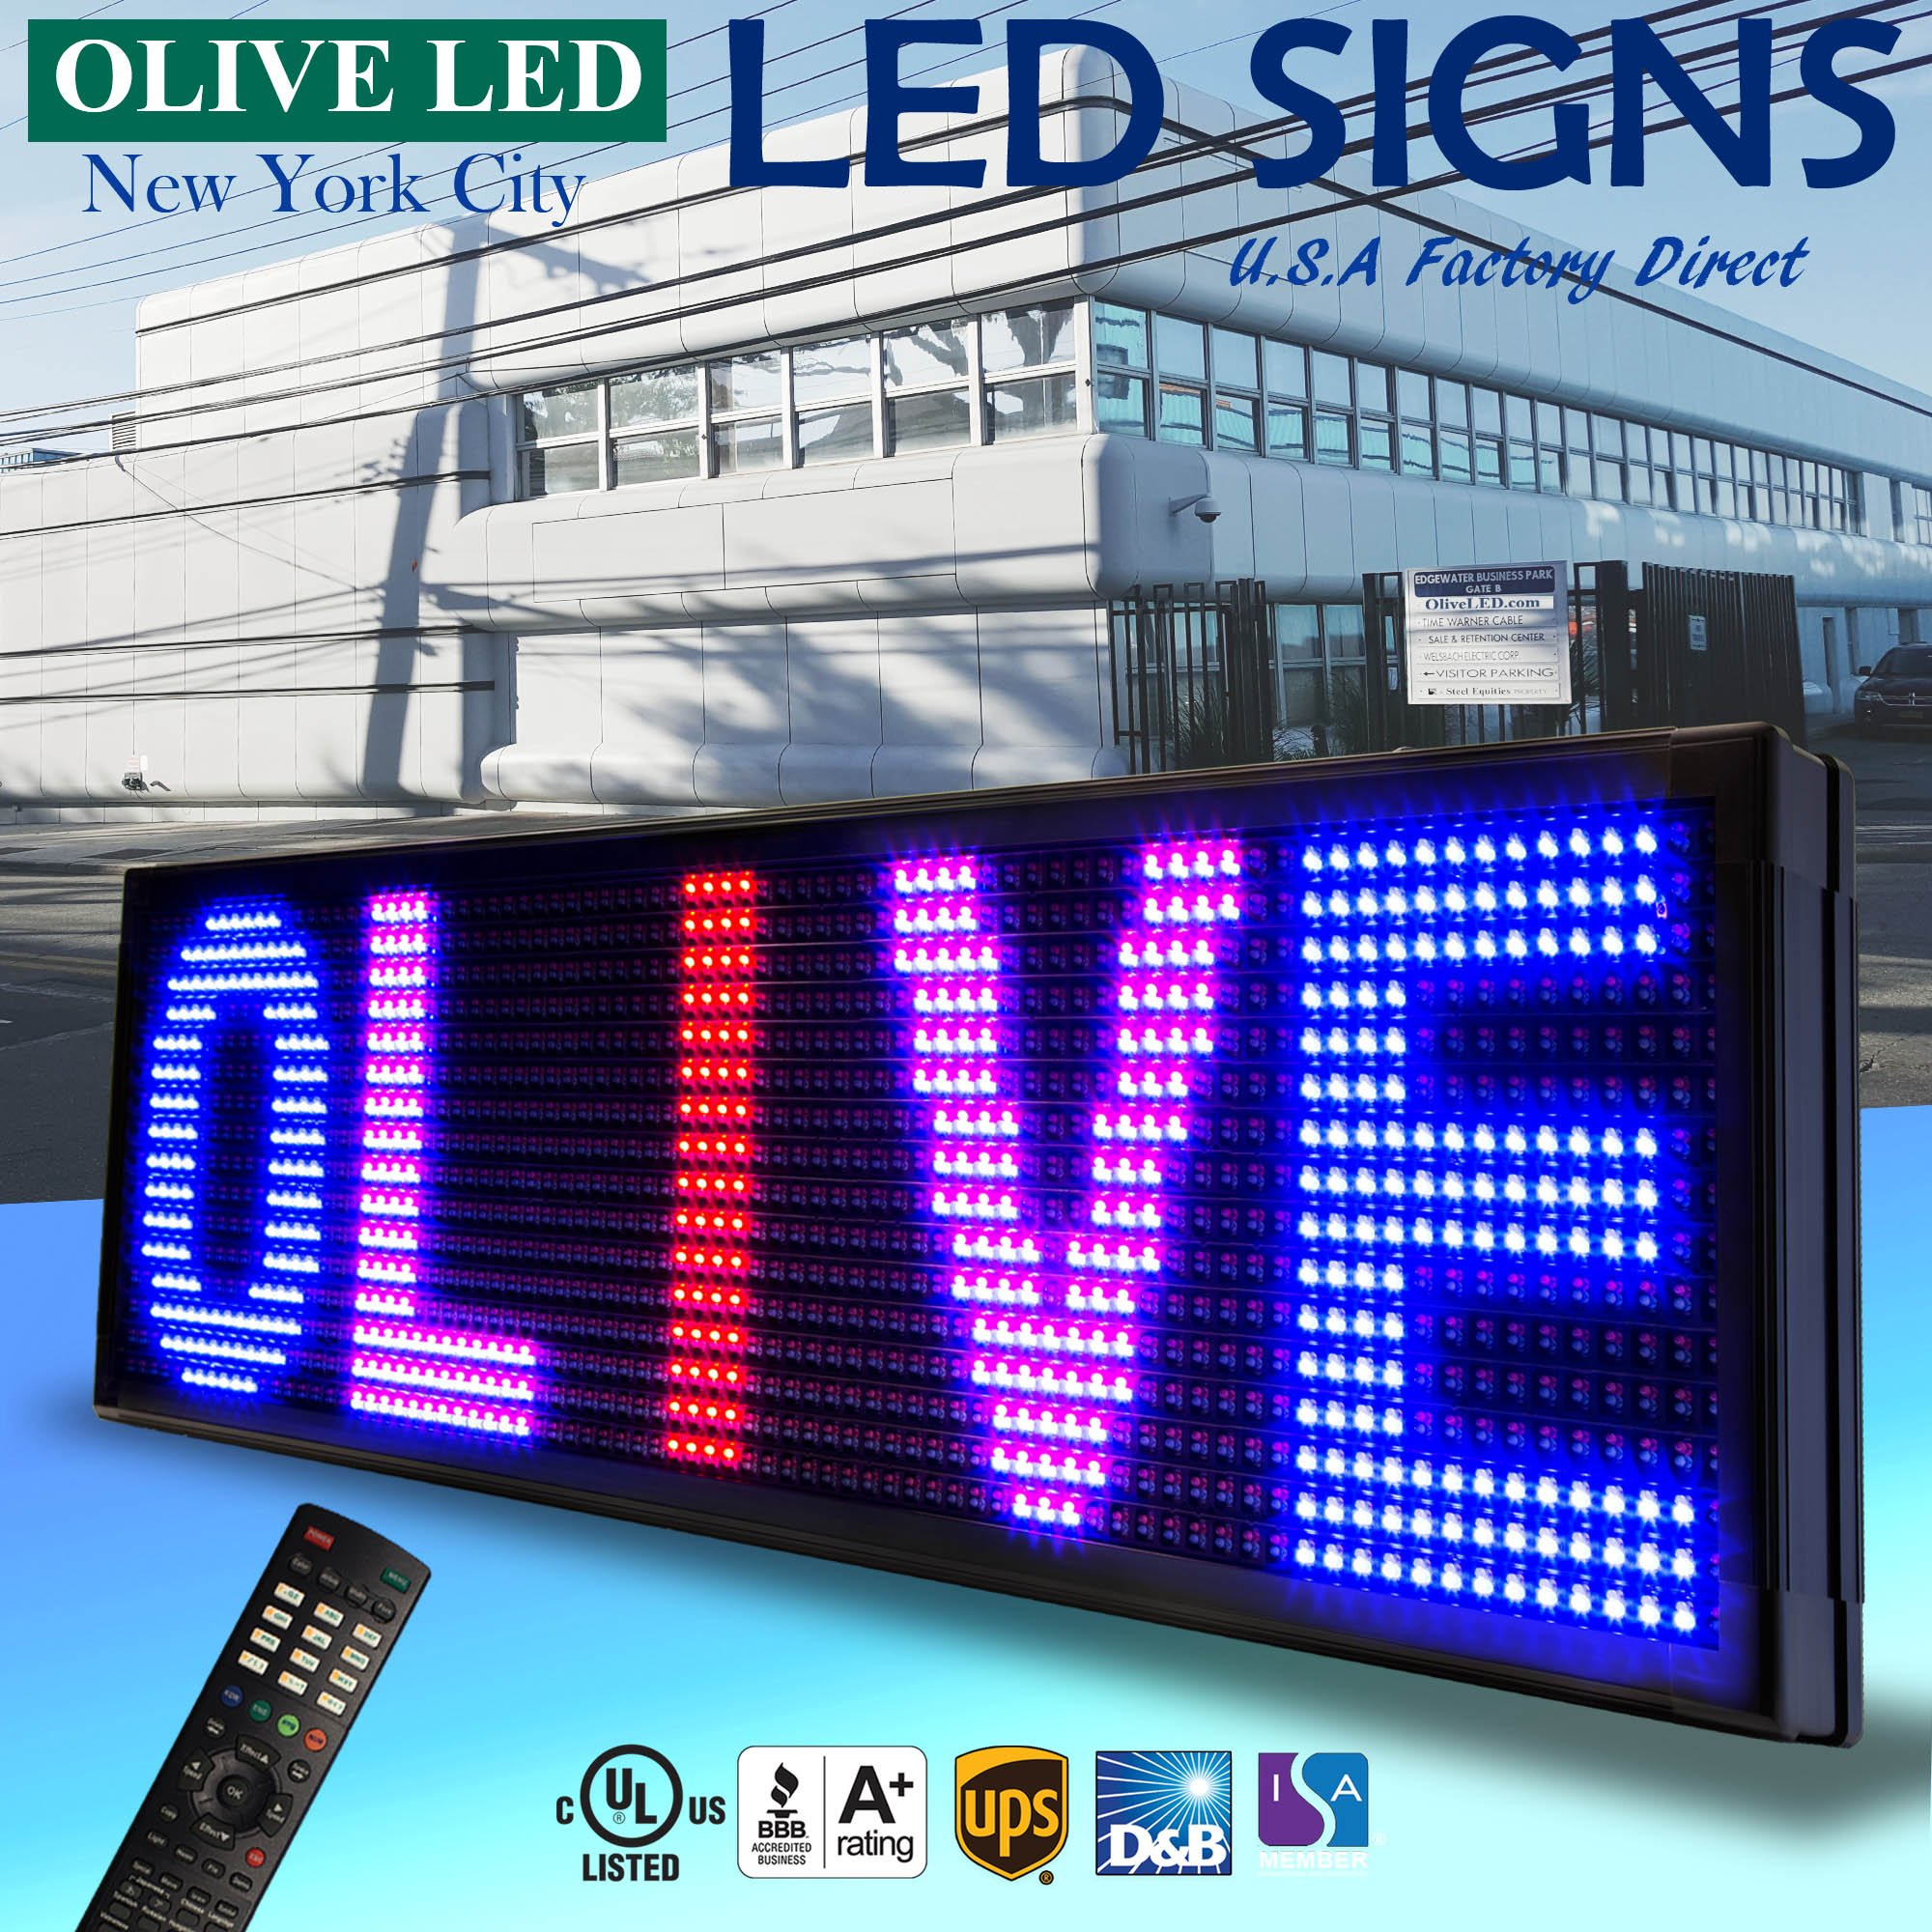 OLIVE LED Sign 3Color, RBP, P20, 15''x53'' IR Programmable Scrolling Outdoor Message Display Signs EMC - Industrial Grade Business Ad machine.